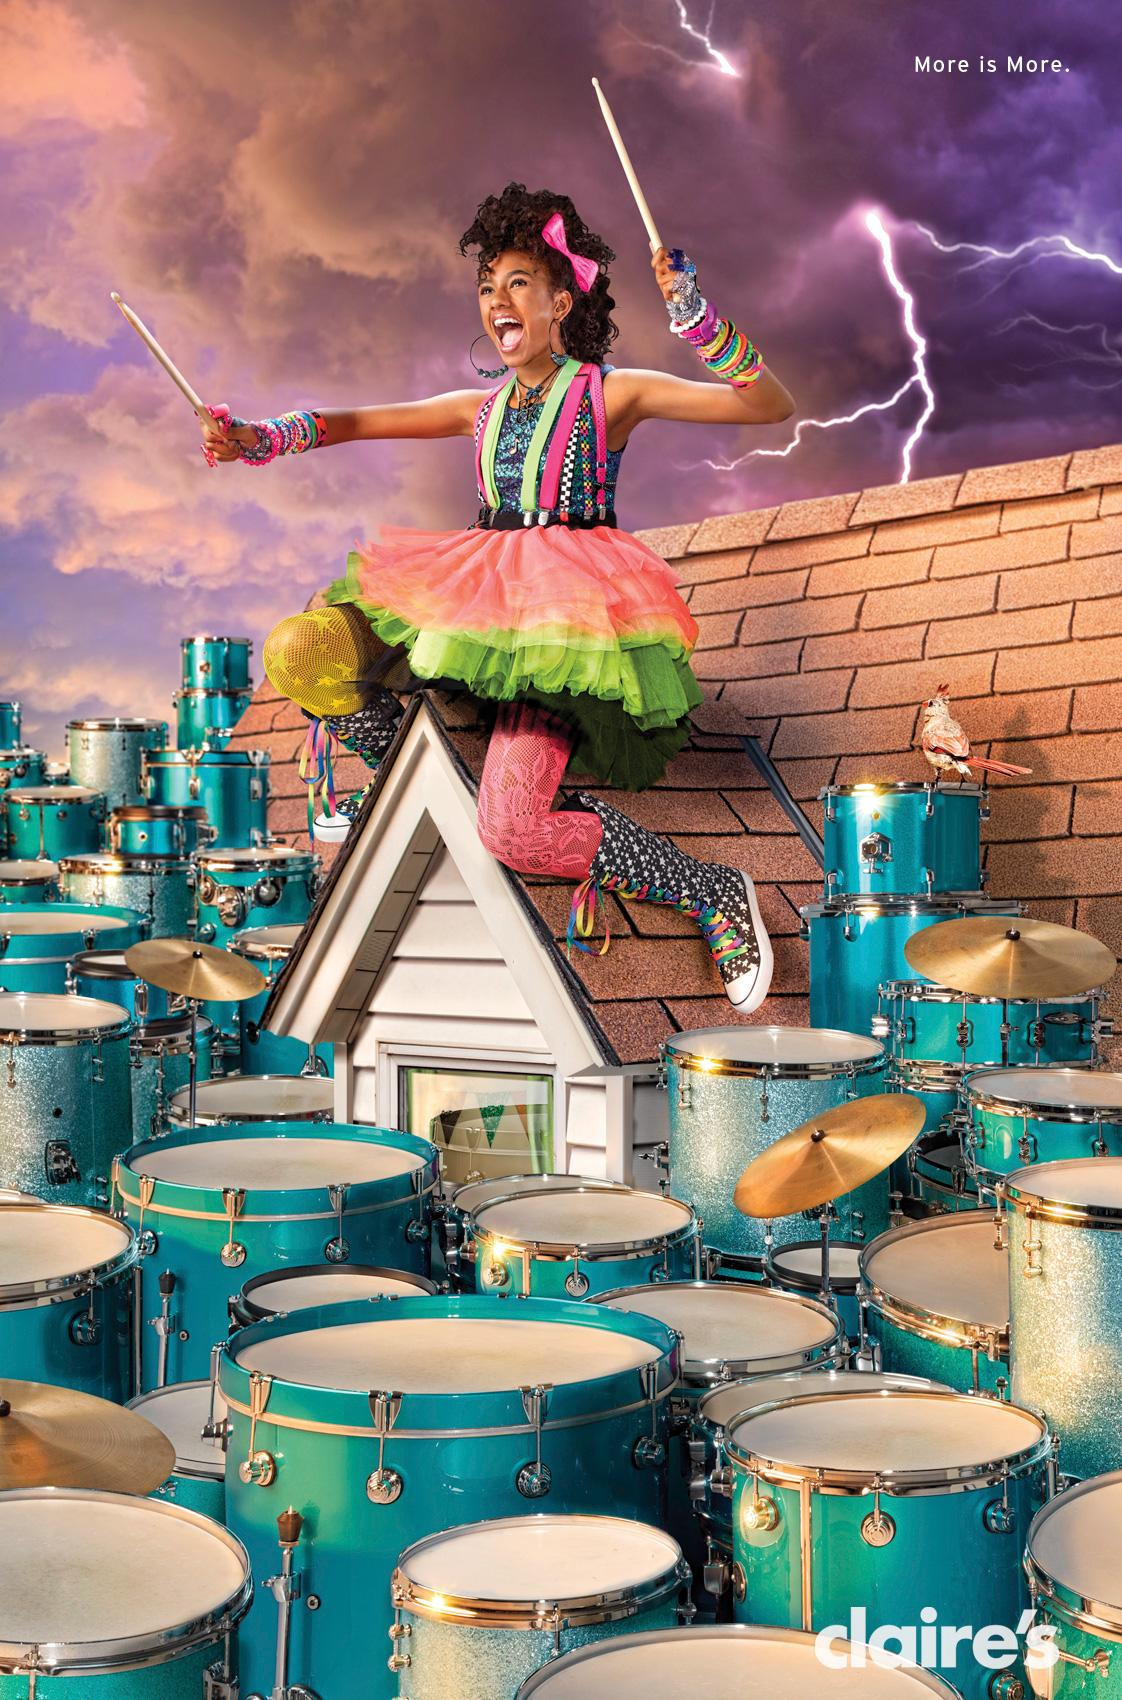 Claire's Outdoor Ad -  Drums